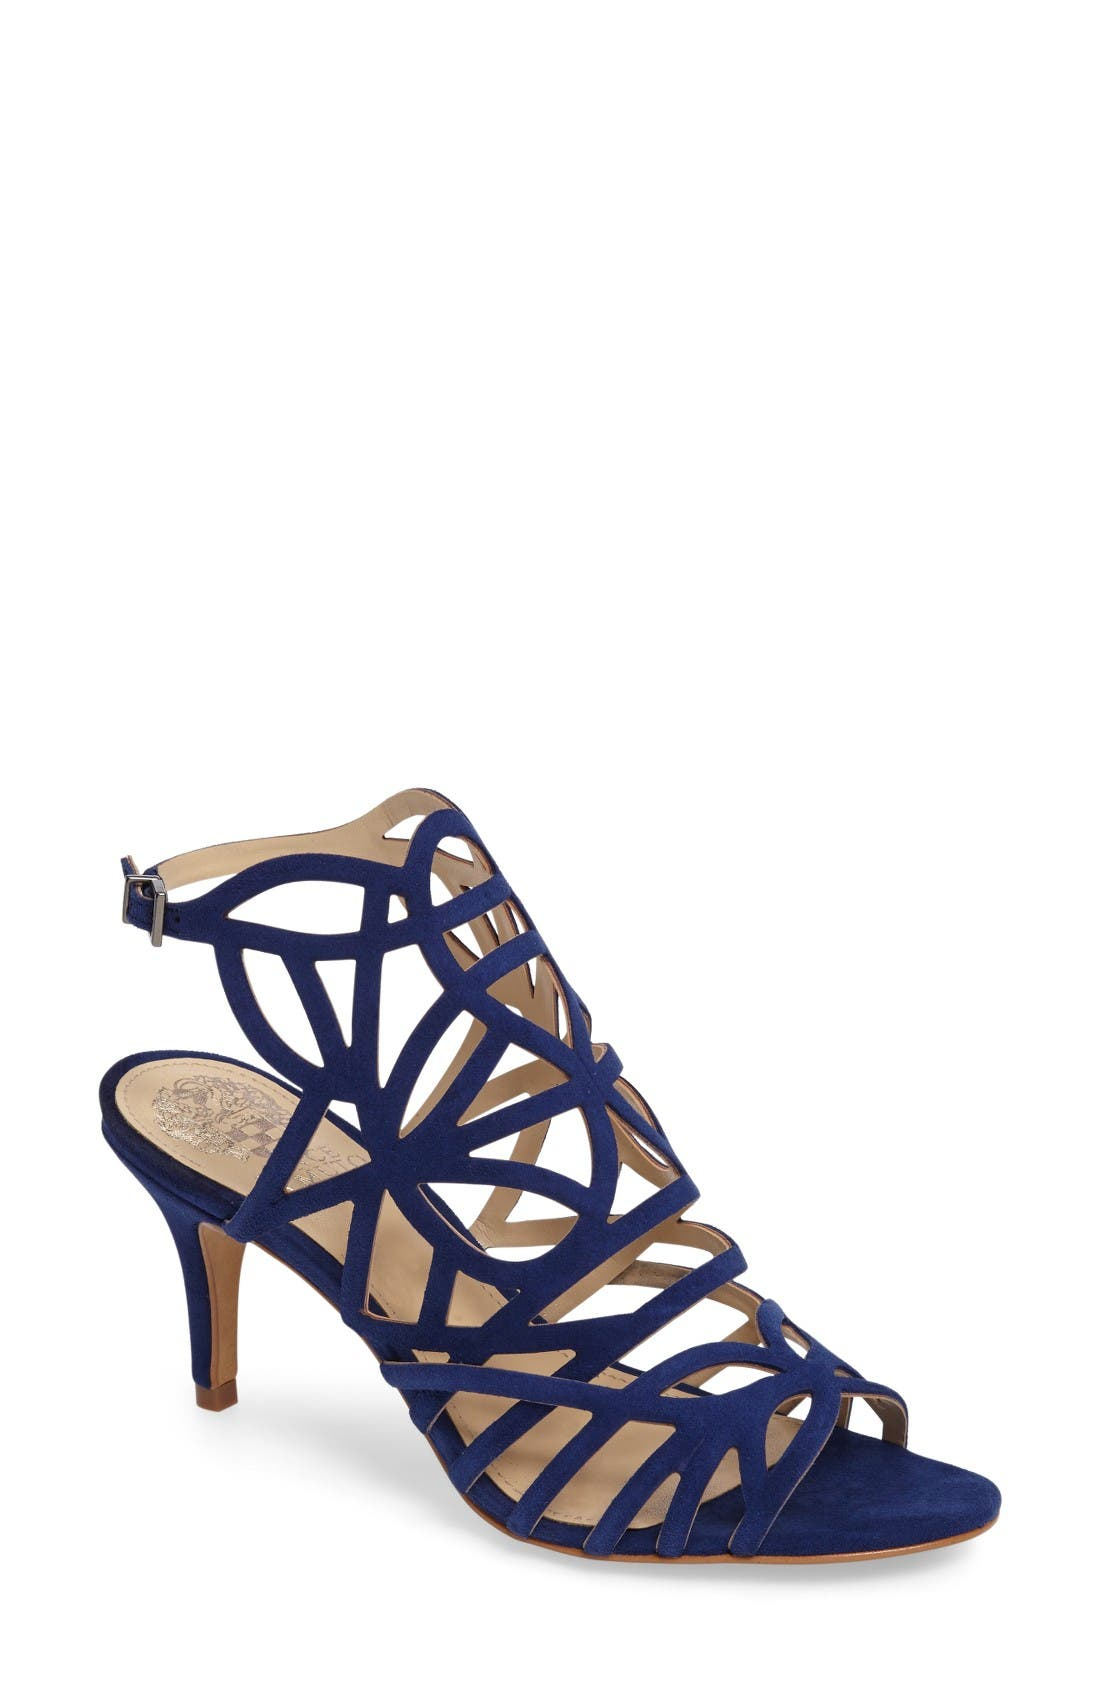 Alternate Image 1 Selected - Vince Camuto Pelena Slingback Sandal (Women)